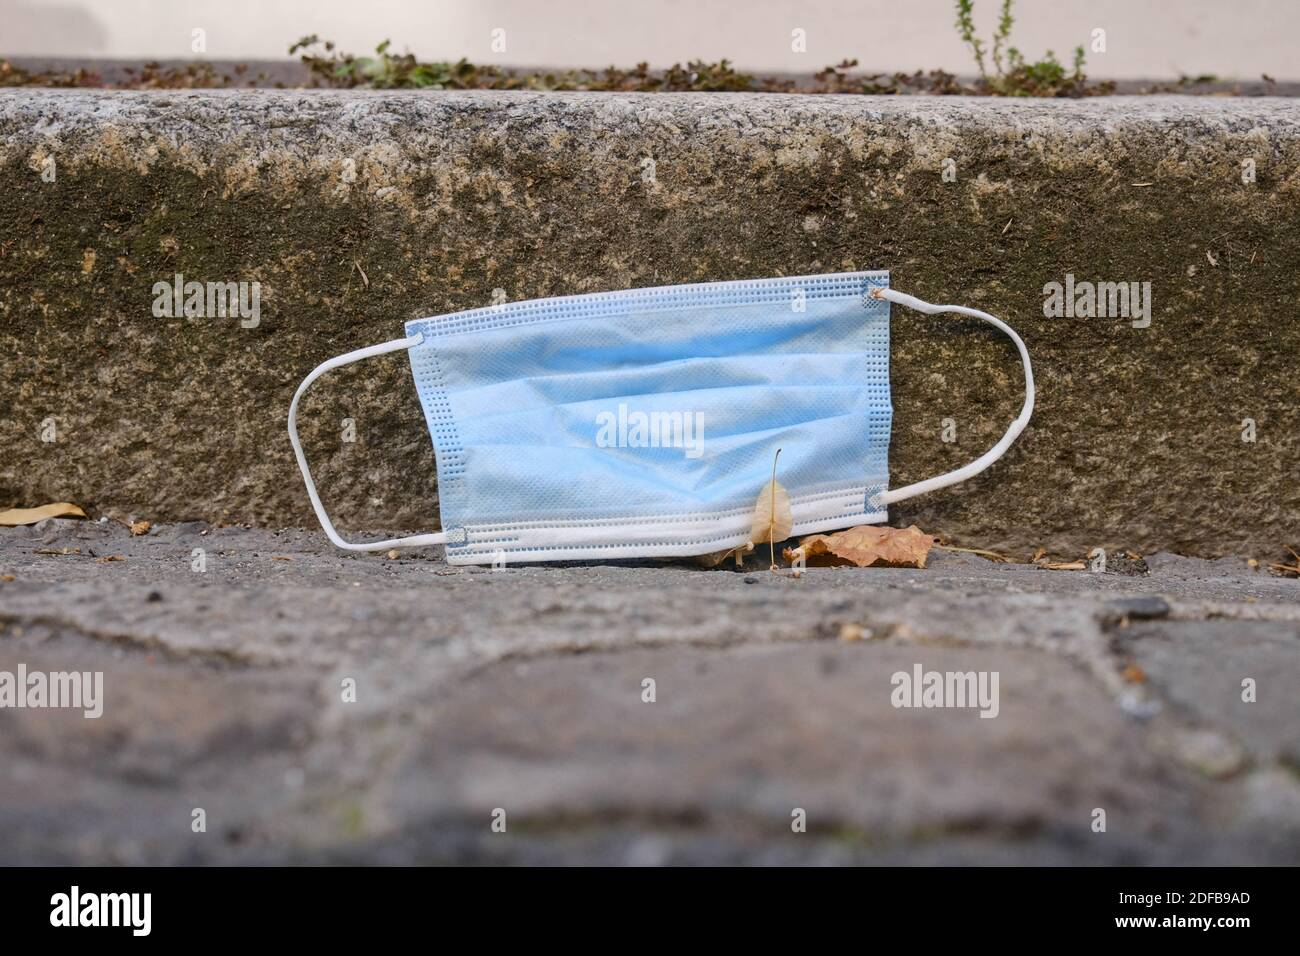 A protective face mask is seen discarded on the ground in Toulouse, France, on June 27, 2020. As the use of masks and gloves sky-rocketed to protect the humanity from the coronavirus pandemic, their impact on environment also rose, with the worrying consumption of plastic and its disposal. Many fear the progress of eliminating single-use plastic is now being undone, as these protection tools are already being seen polluting the environment. Photo by Patrick Batard/ABACAPRESS.COM Stock Photo